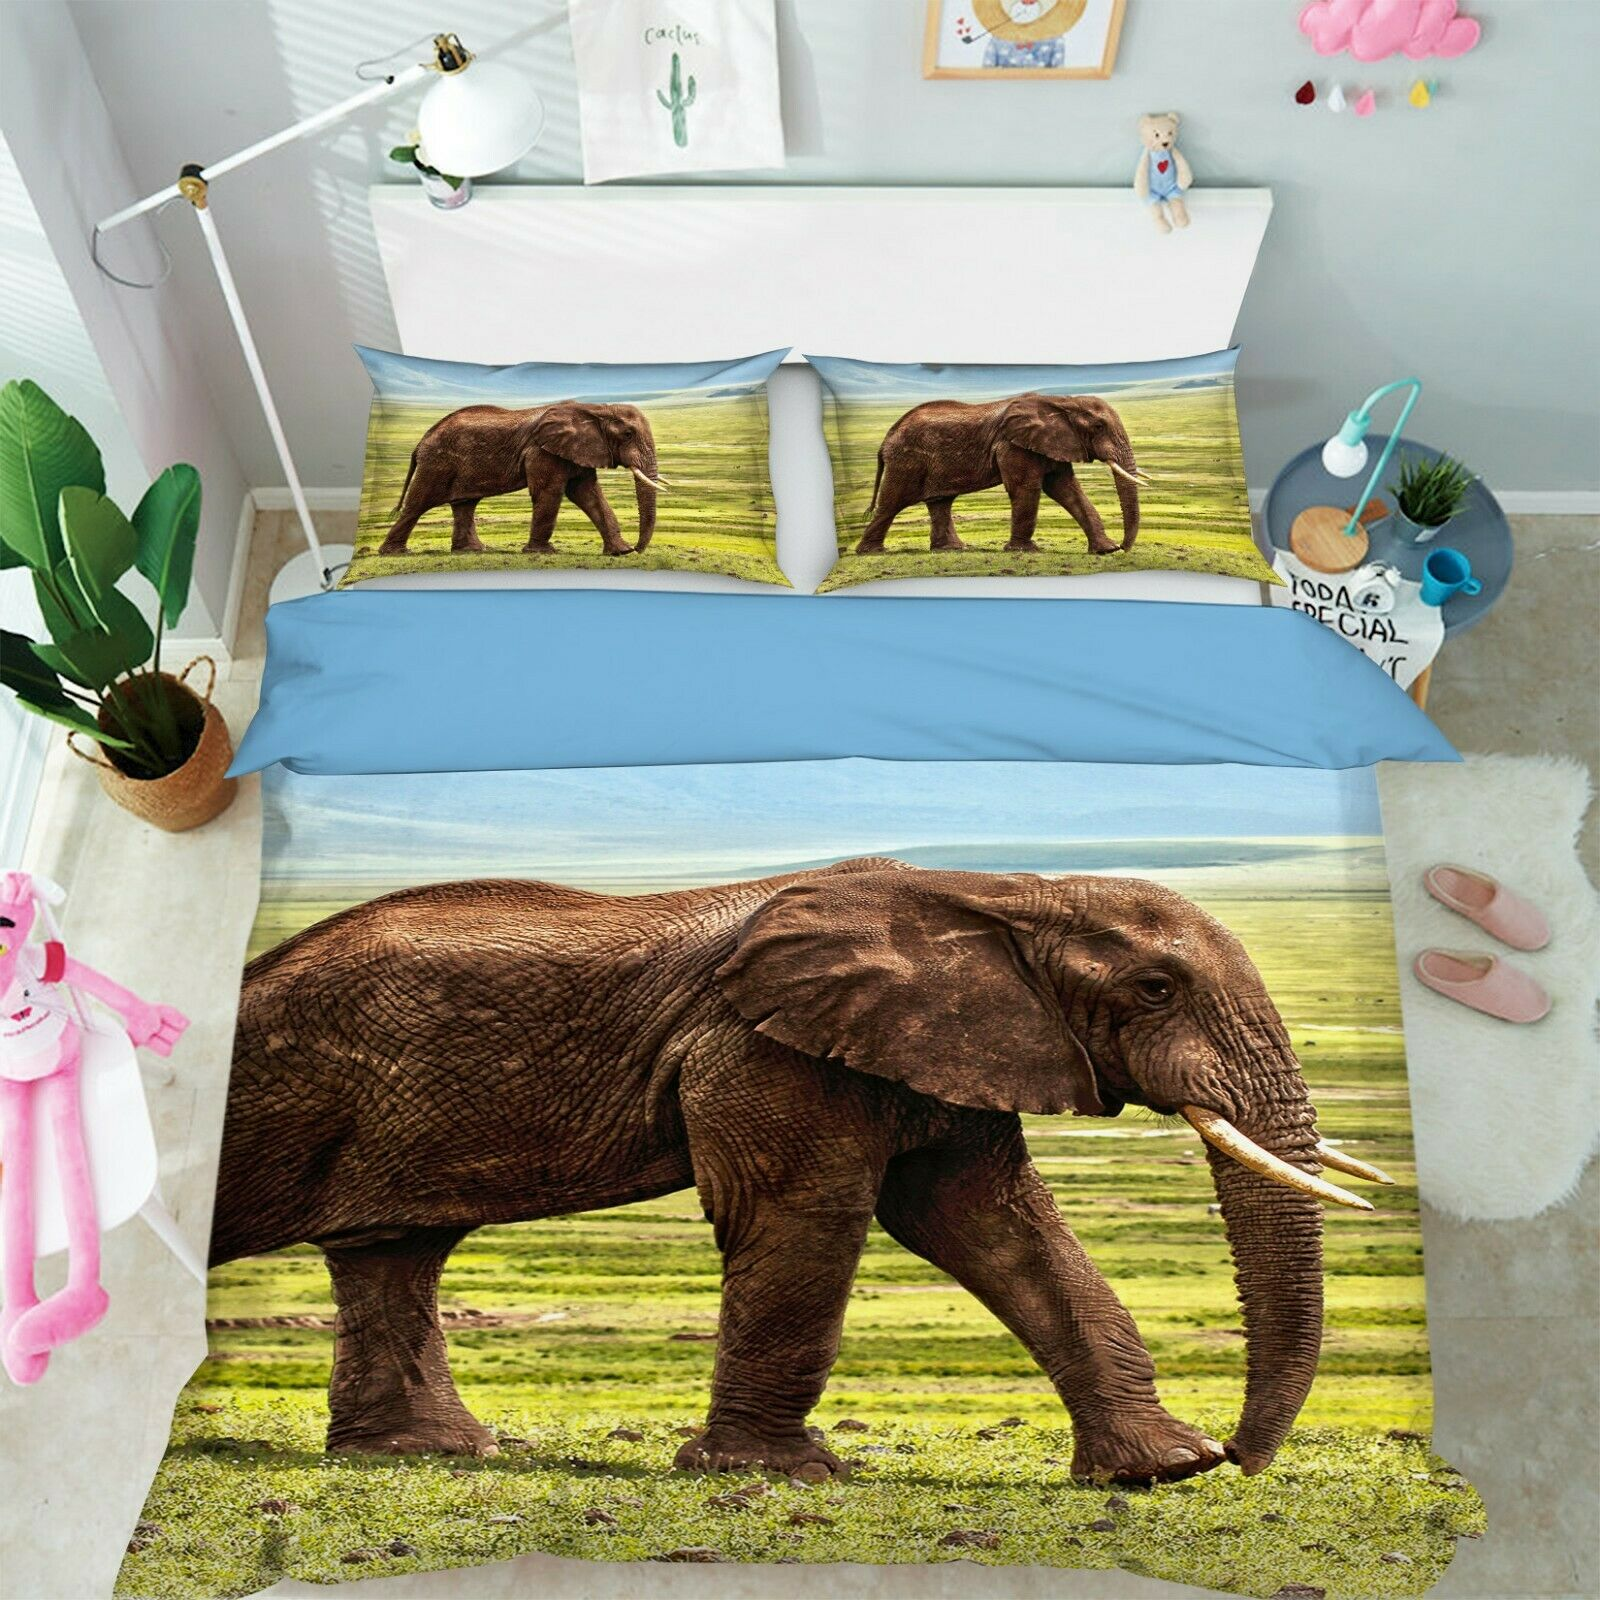 3D Elephant Nature P21 Animal lit PilFaiblecass courtepointe couette Cover Set Queen Zoe